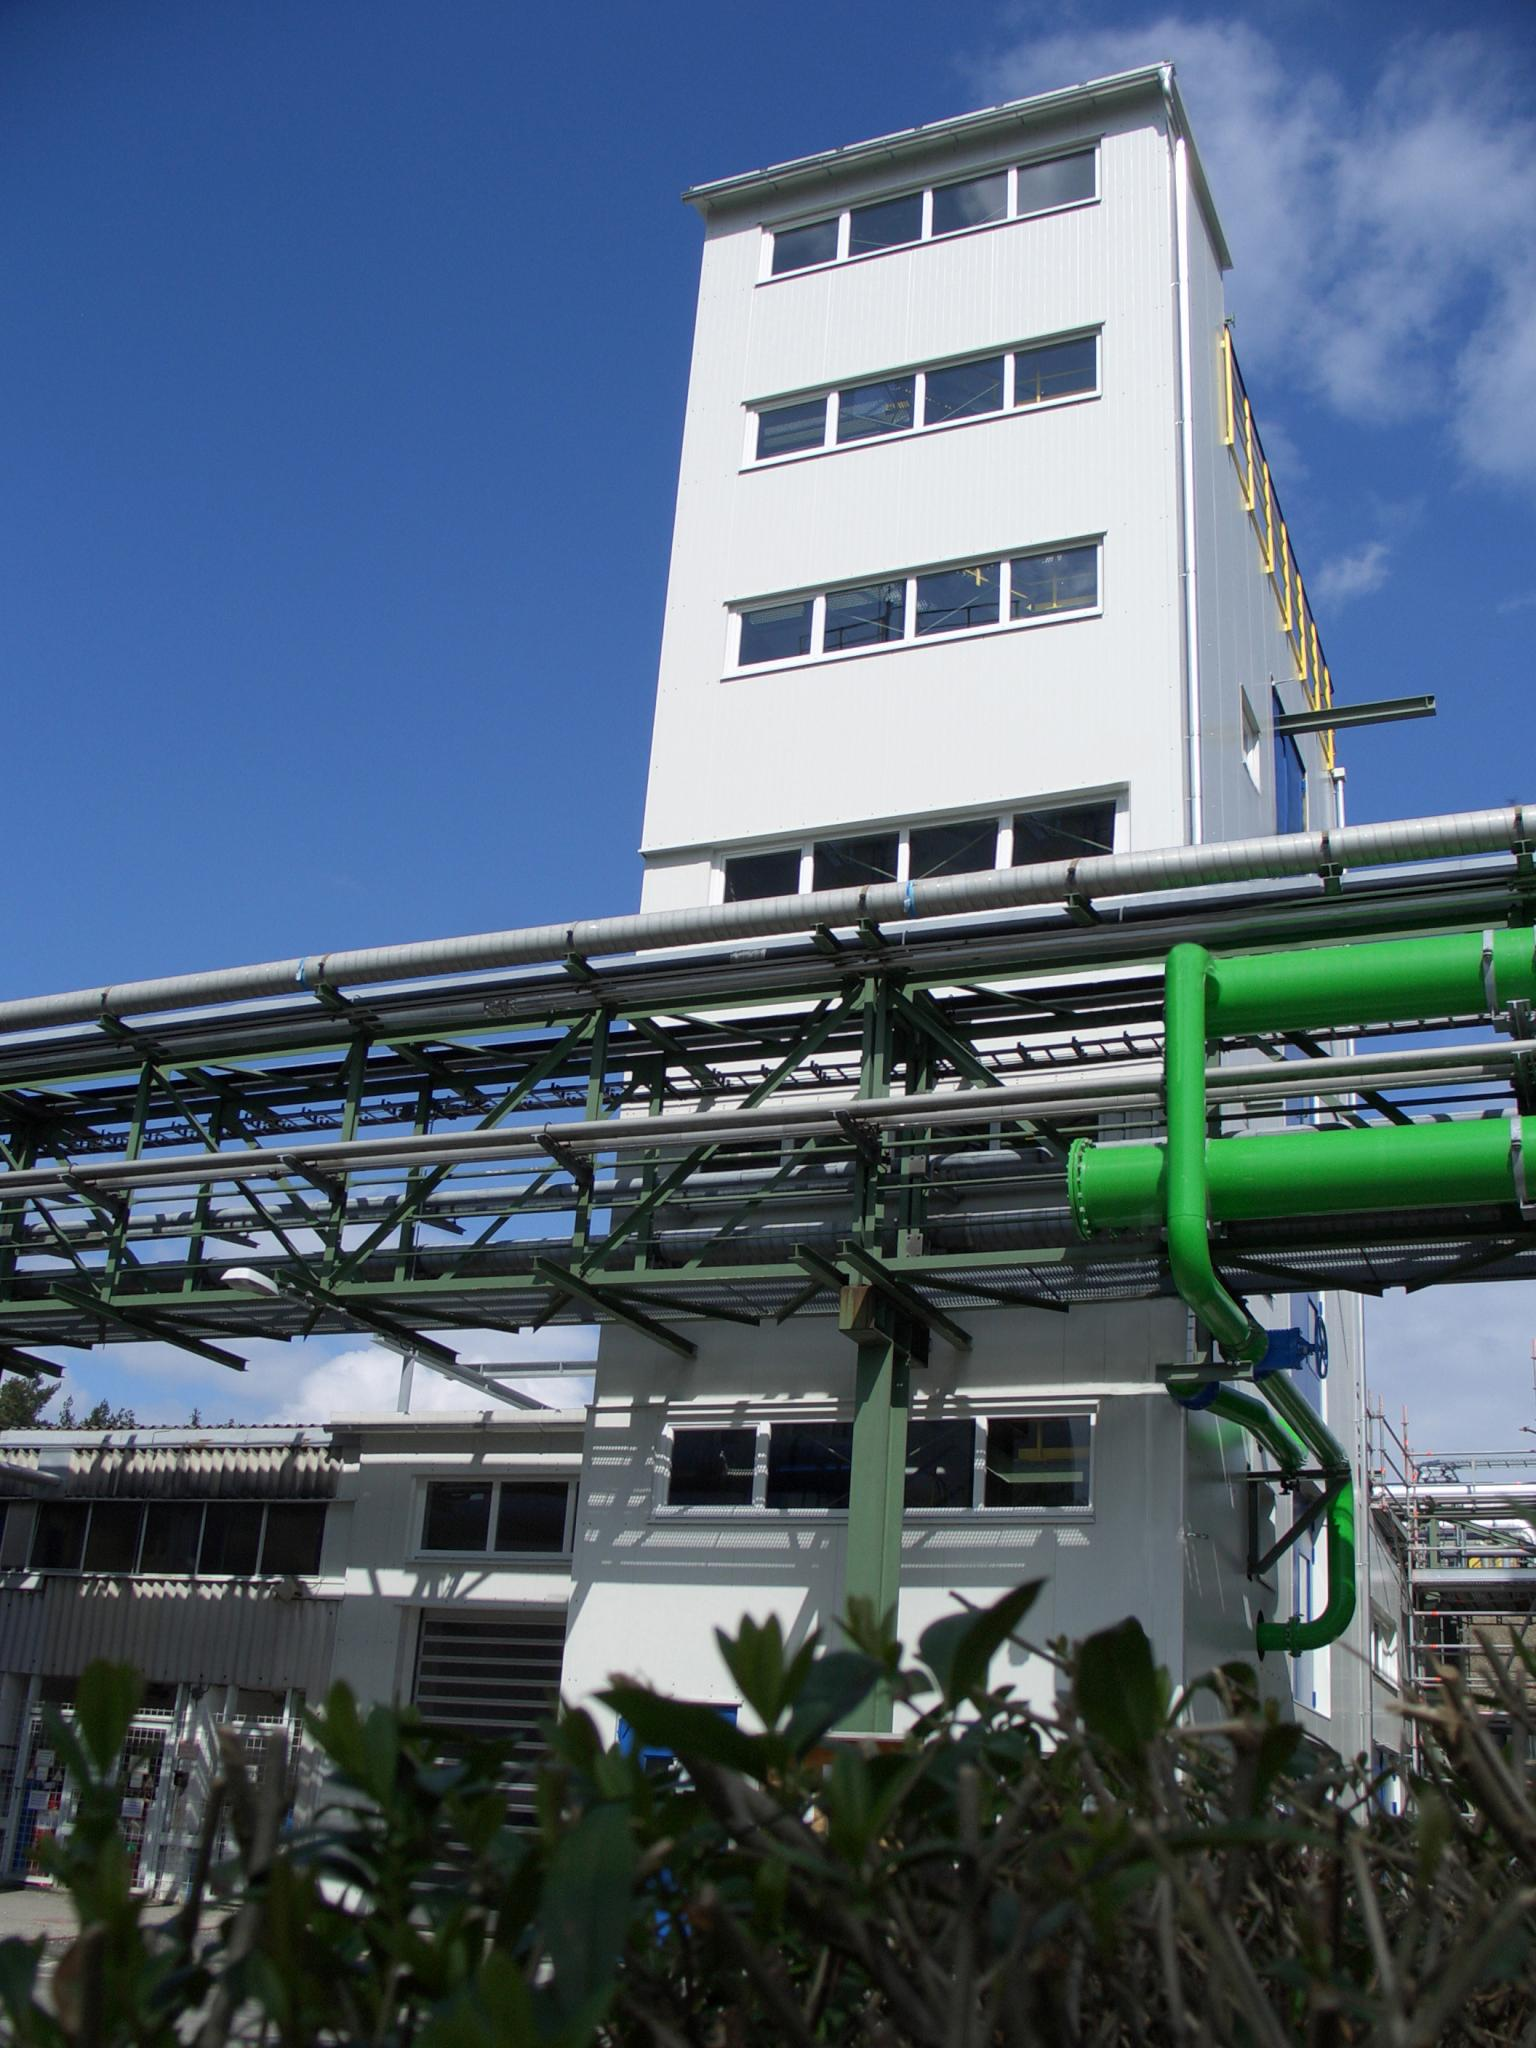 Dyneon operates the world's first plant for sustainable Up-Cycling of end-of-life perfluorinated polymer materials. Source: Dyneon GmbH